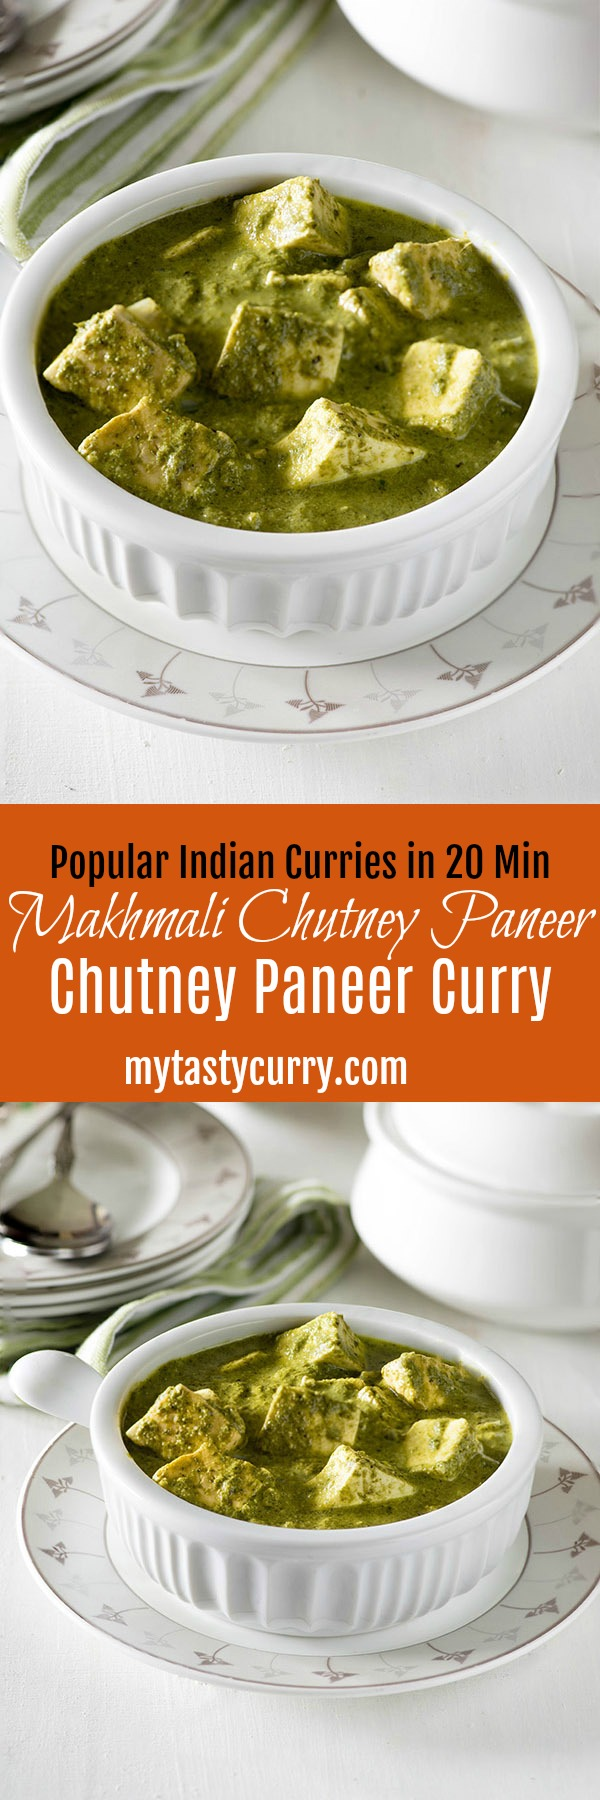 Makhmali Paneer curry is a spicy and aromatic quick paneer dish with a vibrant color and bold flavors. This popular Indian curry takes only 20 minutes to cook and is high on flavor. One of the quickest Paneer curry to serve with Paratha and Naan